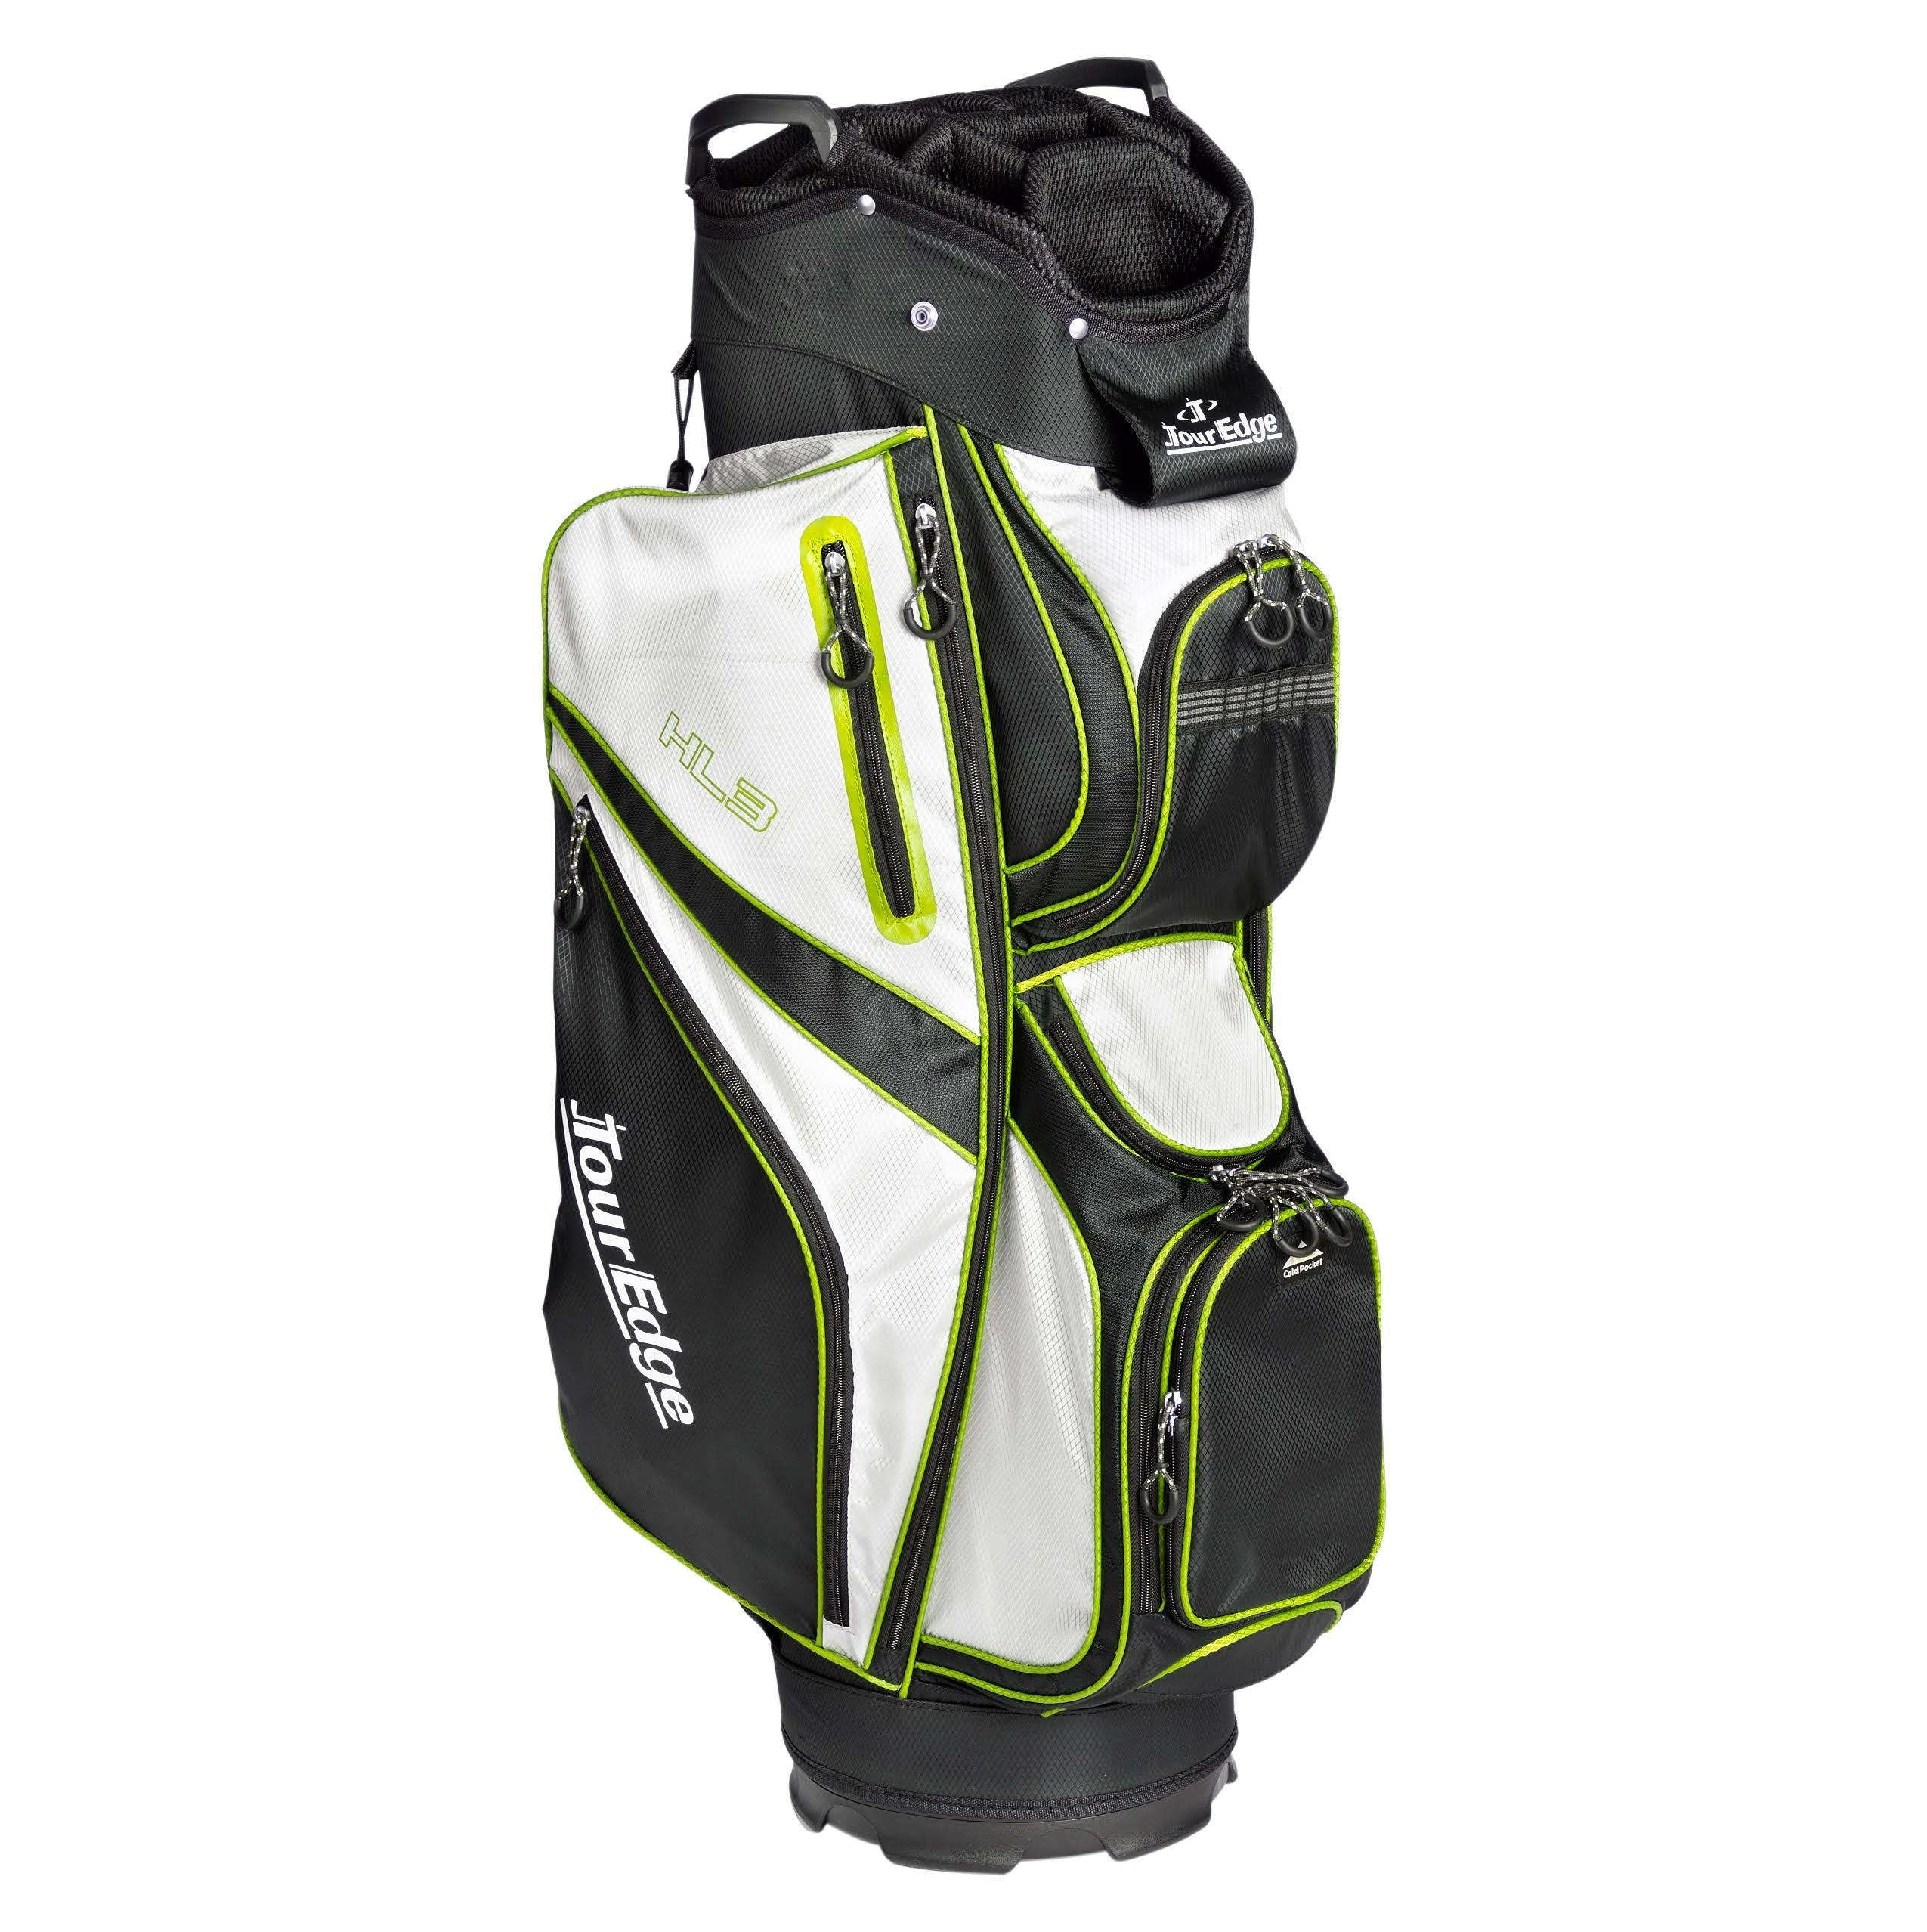 Tour Edge HL3 Golf Cart Bag, Black/Silver/Lime